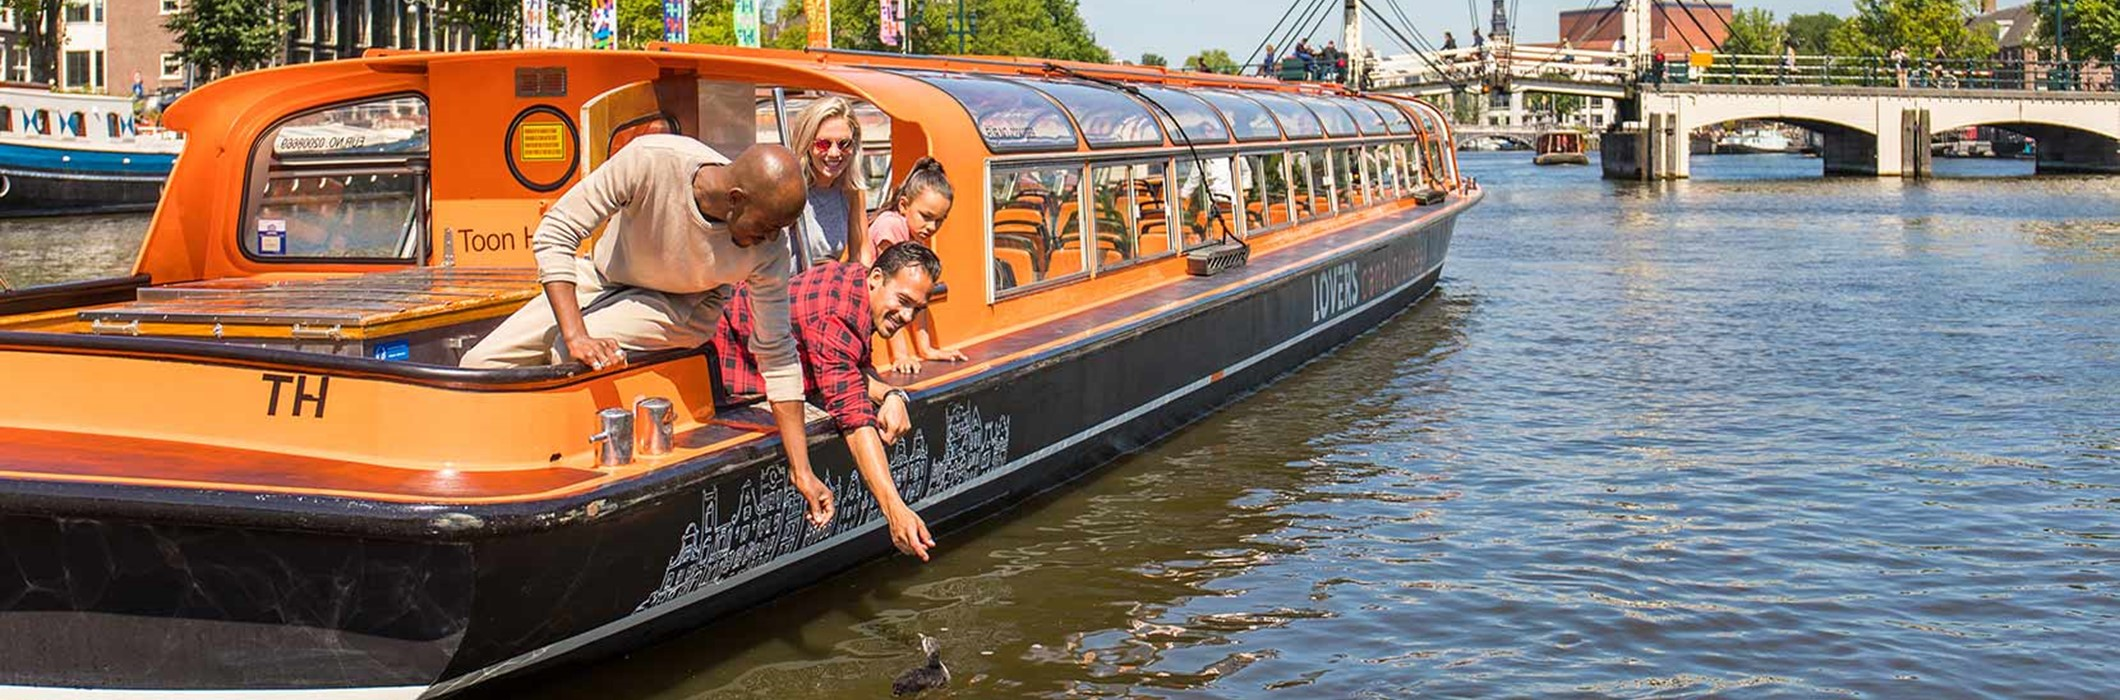 1 h. Amsterdam Day Canal Cruise (departs near Leidse square)